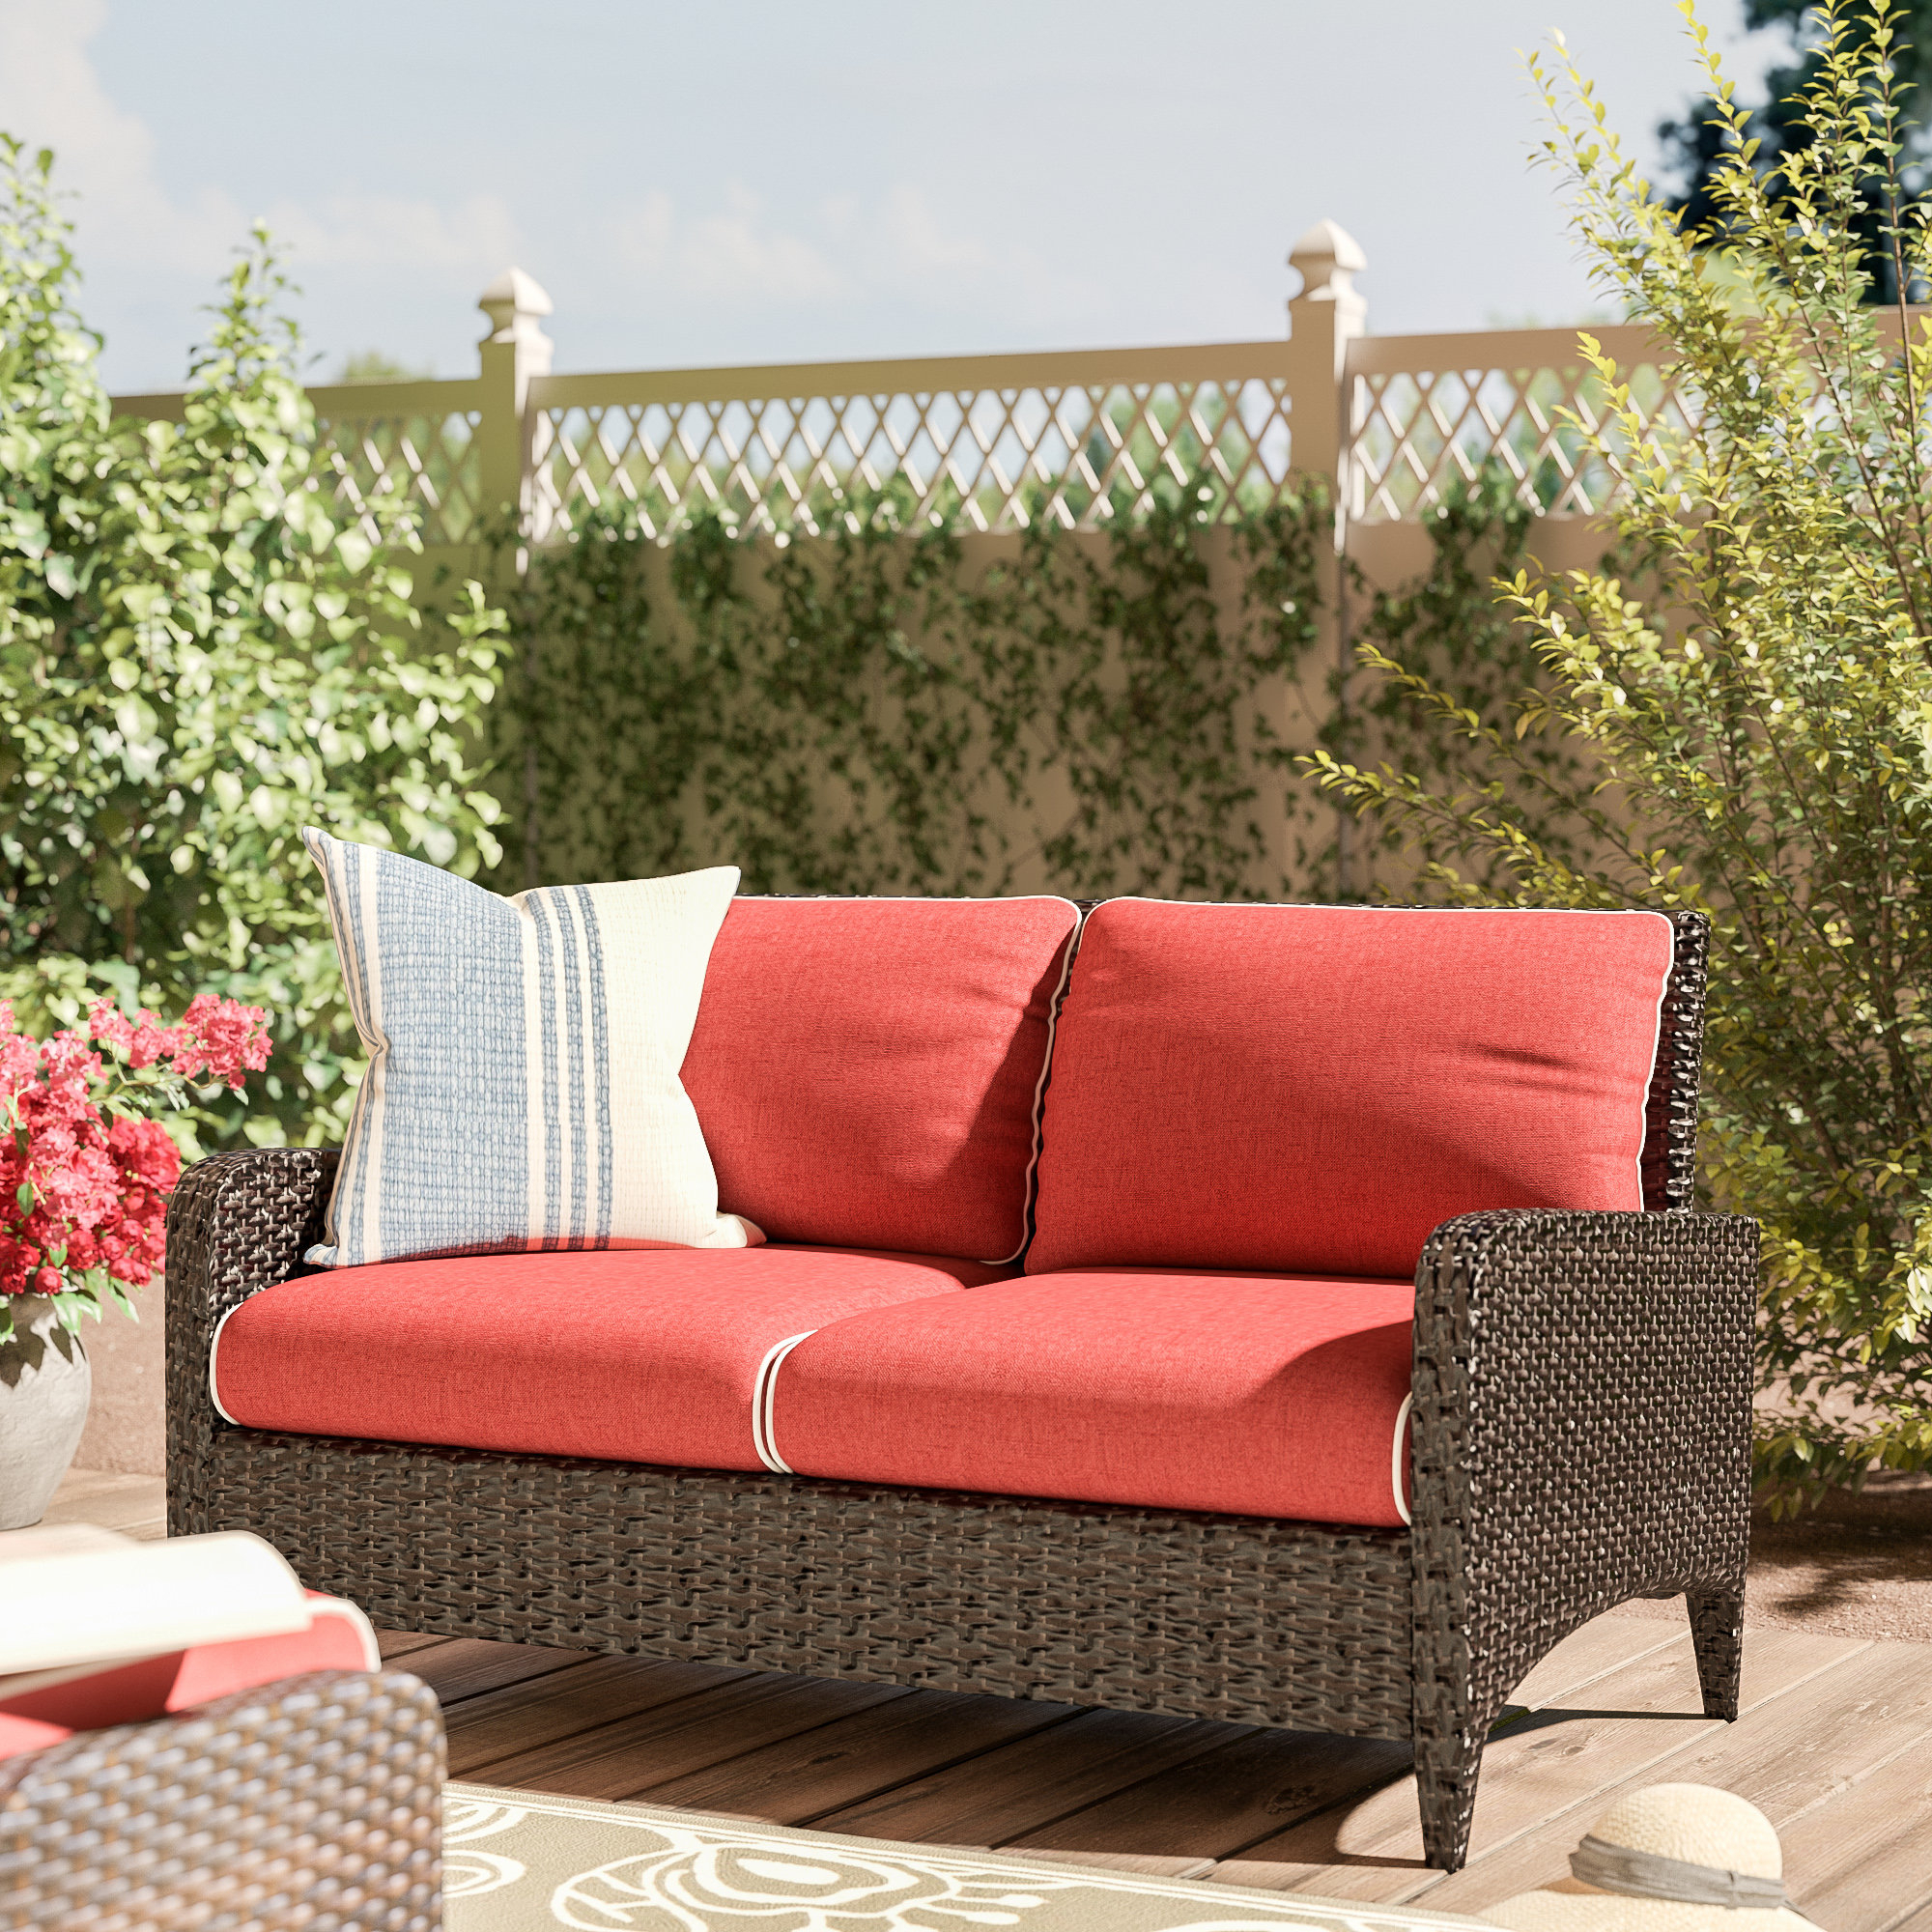 Well Known World Menagerie Mosca Patio Loveseat With Cushions & Reviews With Regard To Camak Patio Loveseats With Cushions (View 19 of 20)